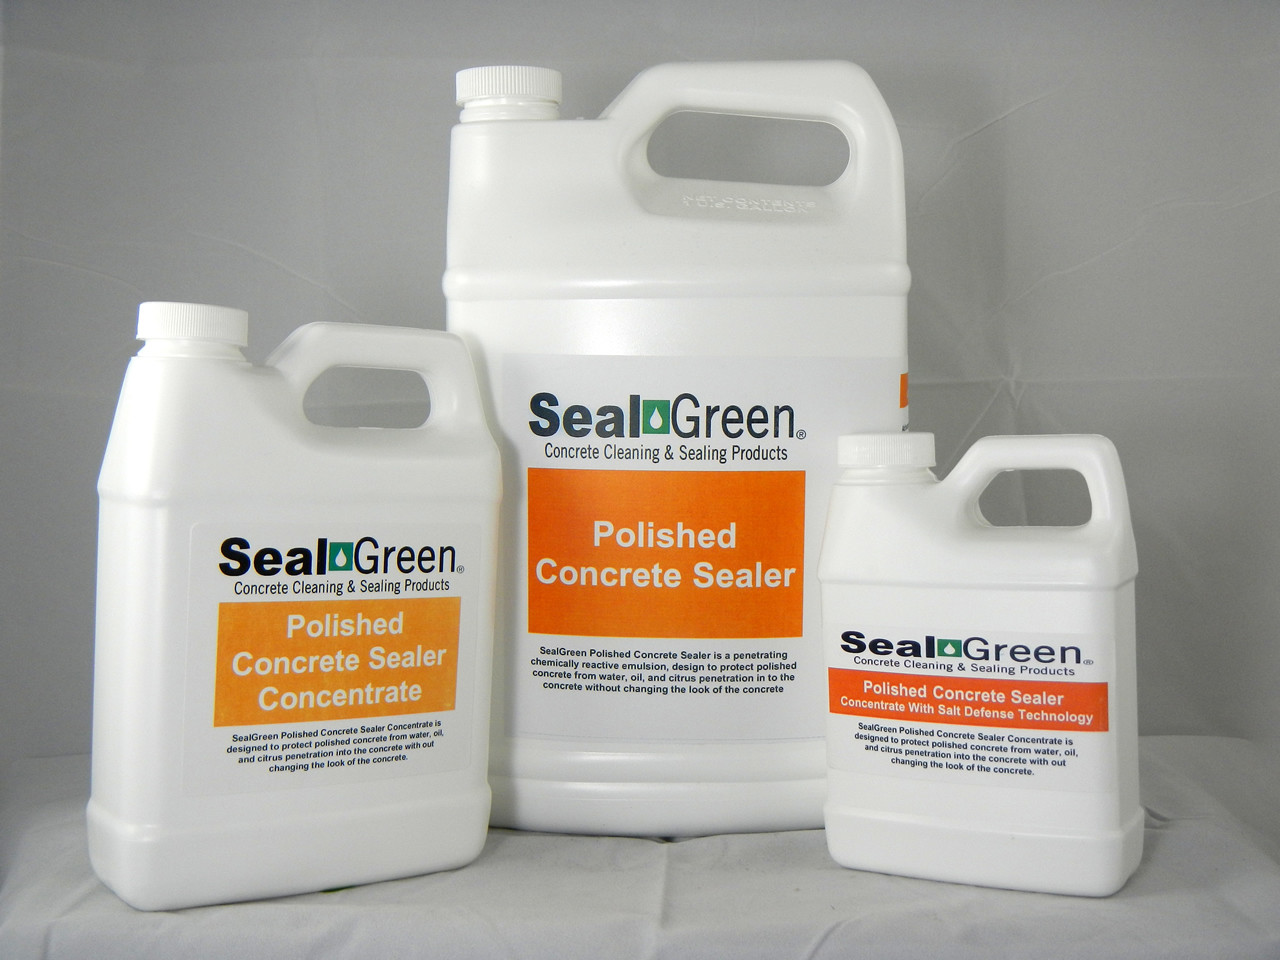 SealGreen Polished Sealer Concrete Concentrate with Salt Defense Technology